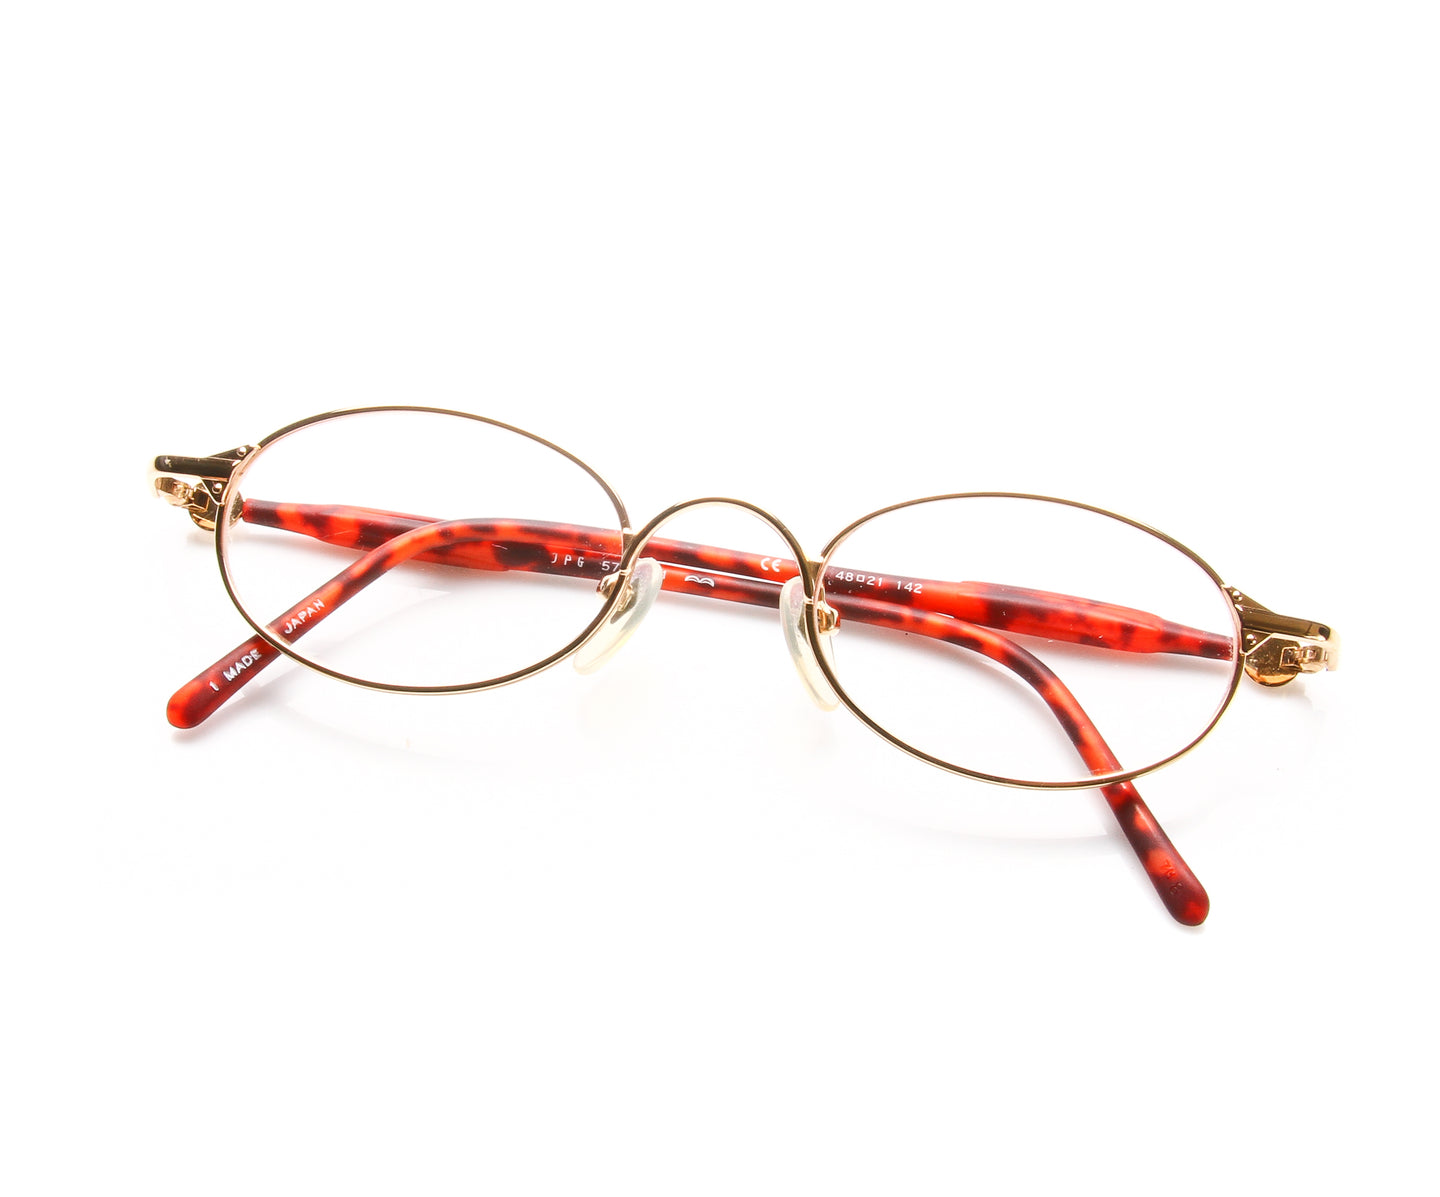 Jean Paul Gaultier 57 7201 1, Jean Paul Gaultier , glasses frames, eyeglasses online, eyeglass frames, mens glasses, womens glasses, buy glasses online, designer eyeglasses, vintage sunglasses, retro sunglasses, vintage glasses, sunglass, eyeglass, glasses, lens, vintage frames company, vf